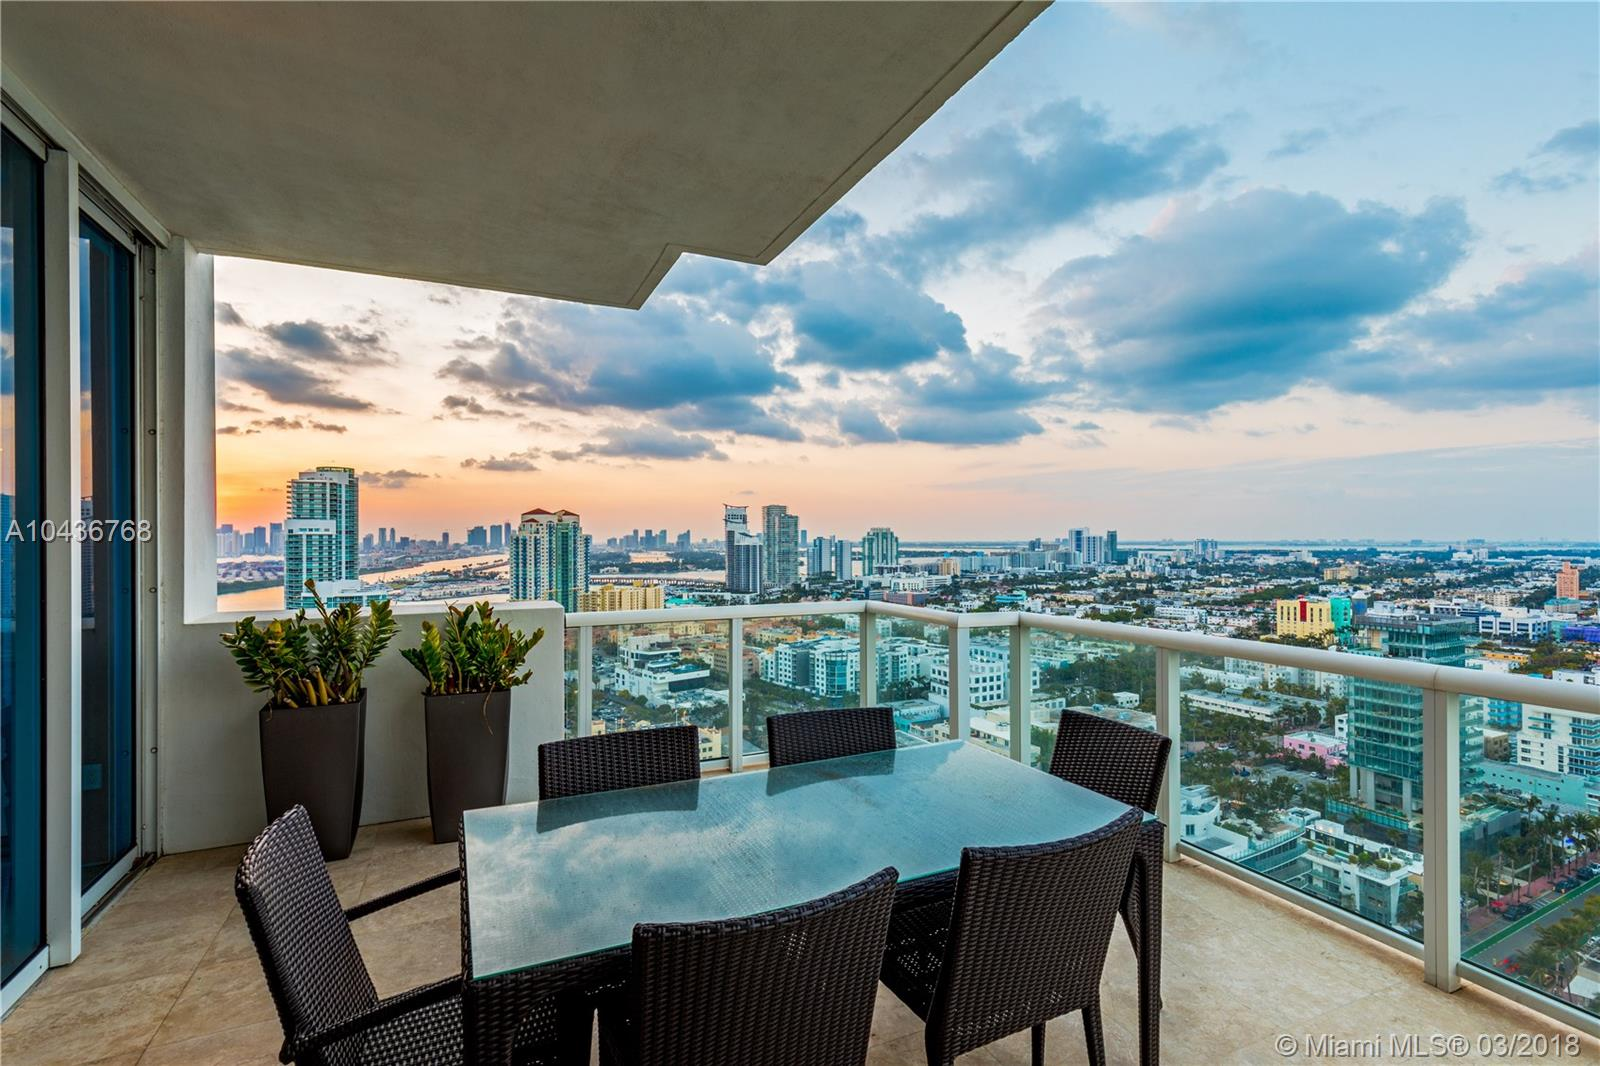 dr 2704 50 S Pointe Dr, #2704, Miami Beach, FL, 33139 | RE/MAX Paradise